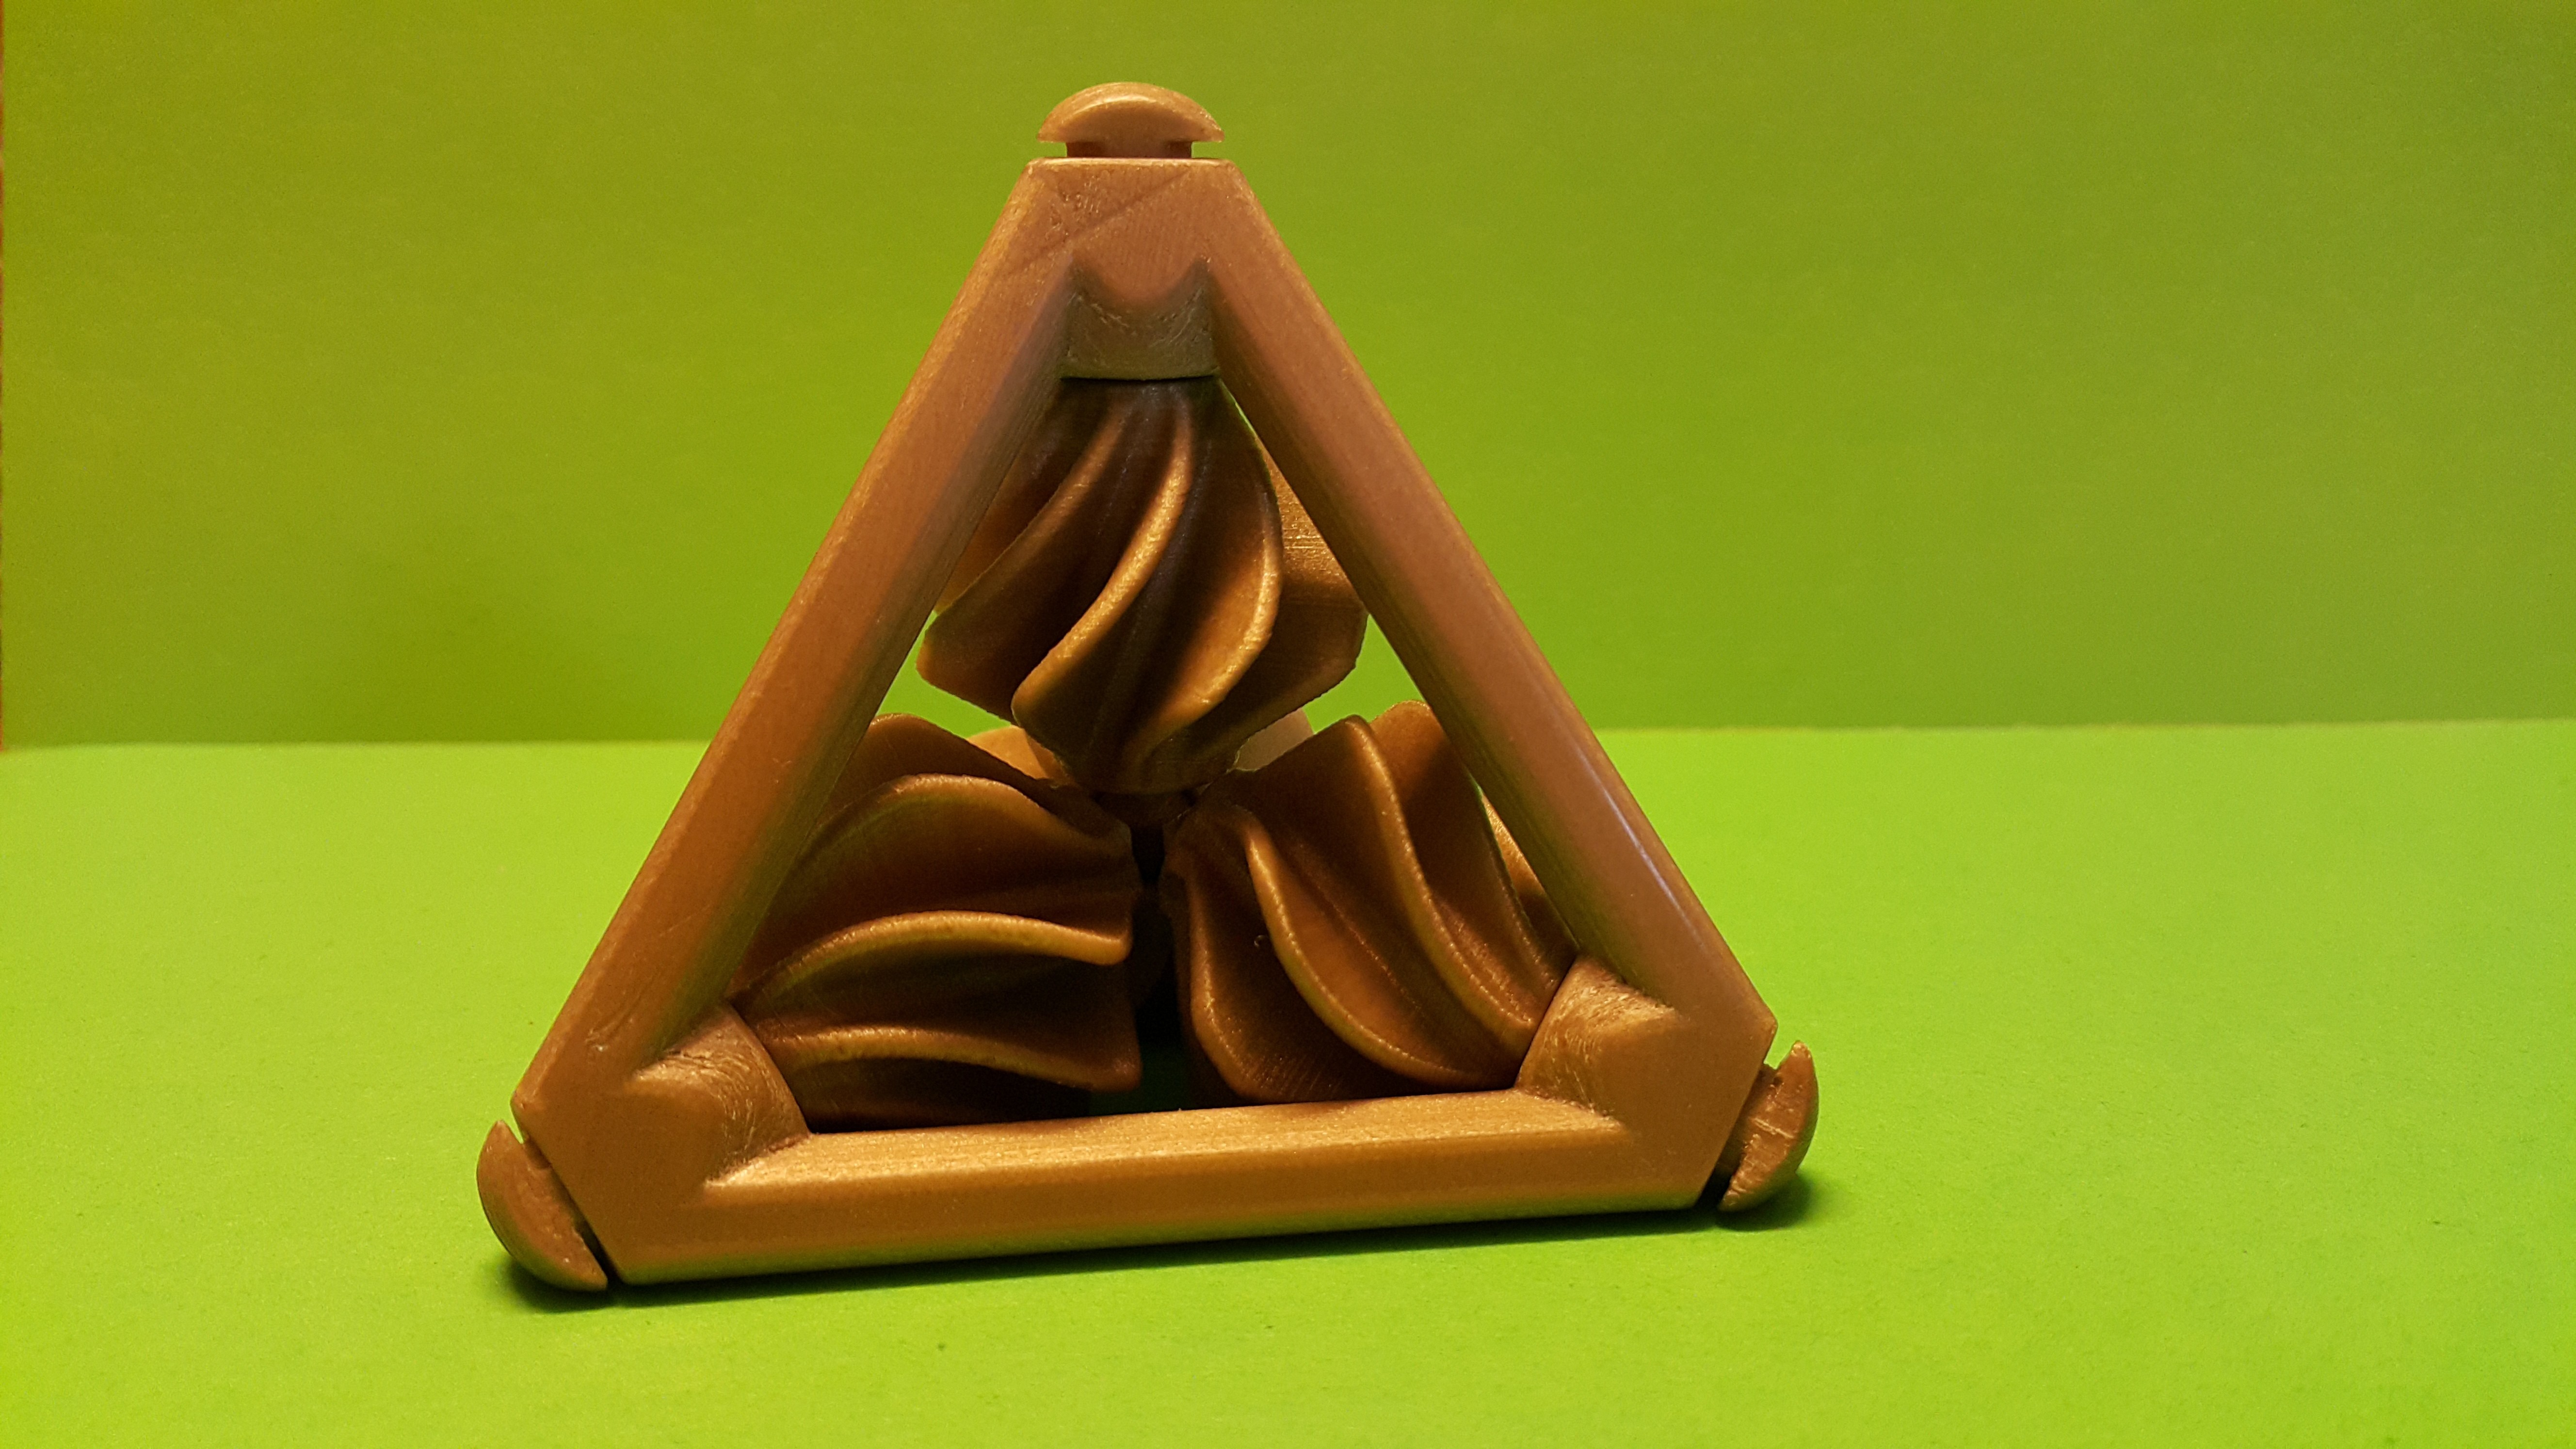 20161018_113013.jpg Download free STL file Tetrahedron with Propellers - Tetraedron with helices • 3D printing model, NOP21